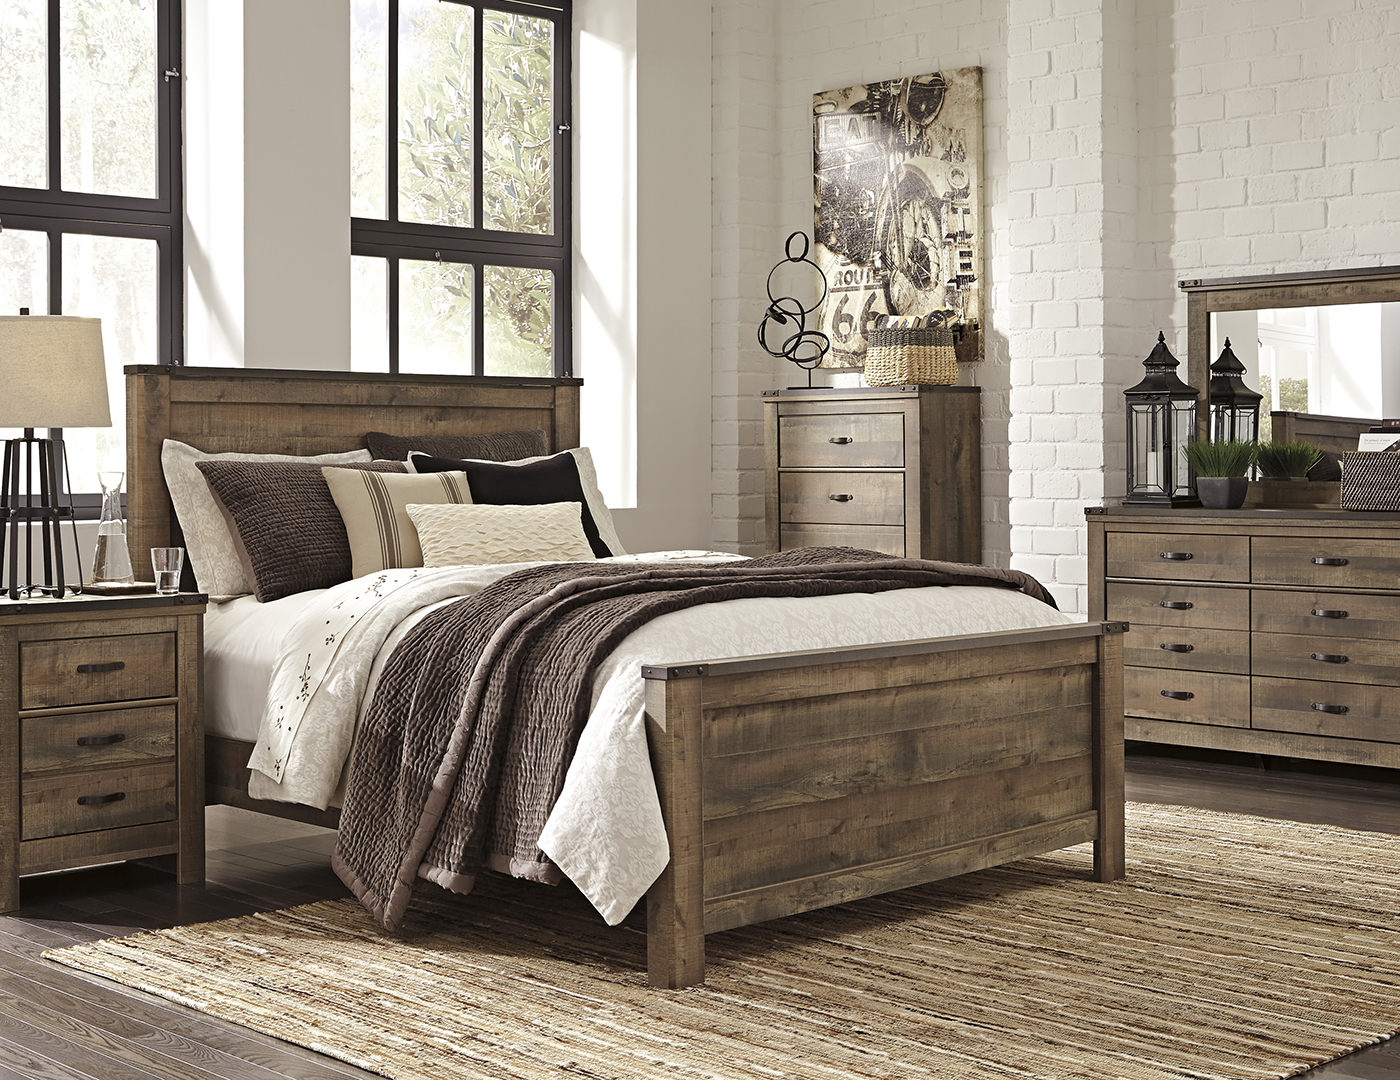 Trinell 5 Pc Queen Bedroom Set Steinhafels